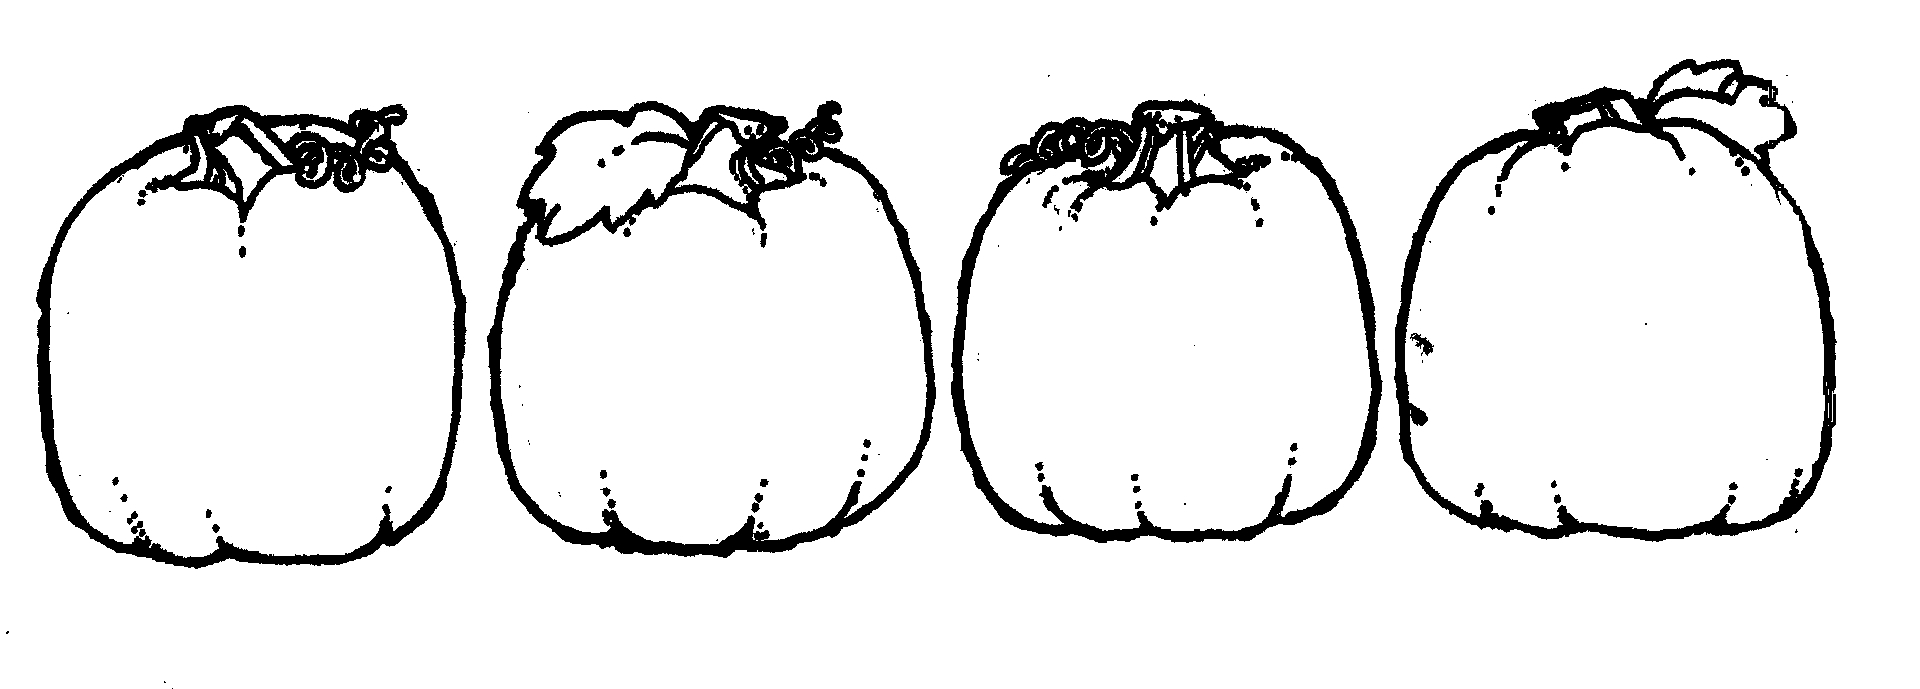 1920x689 Pumpkin Black And White Clip Art Free